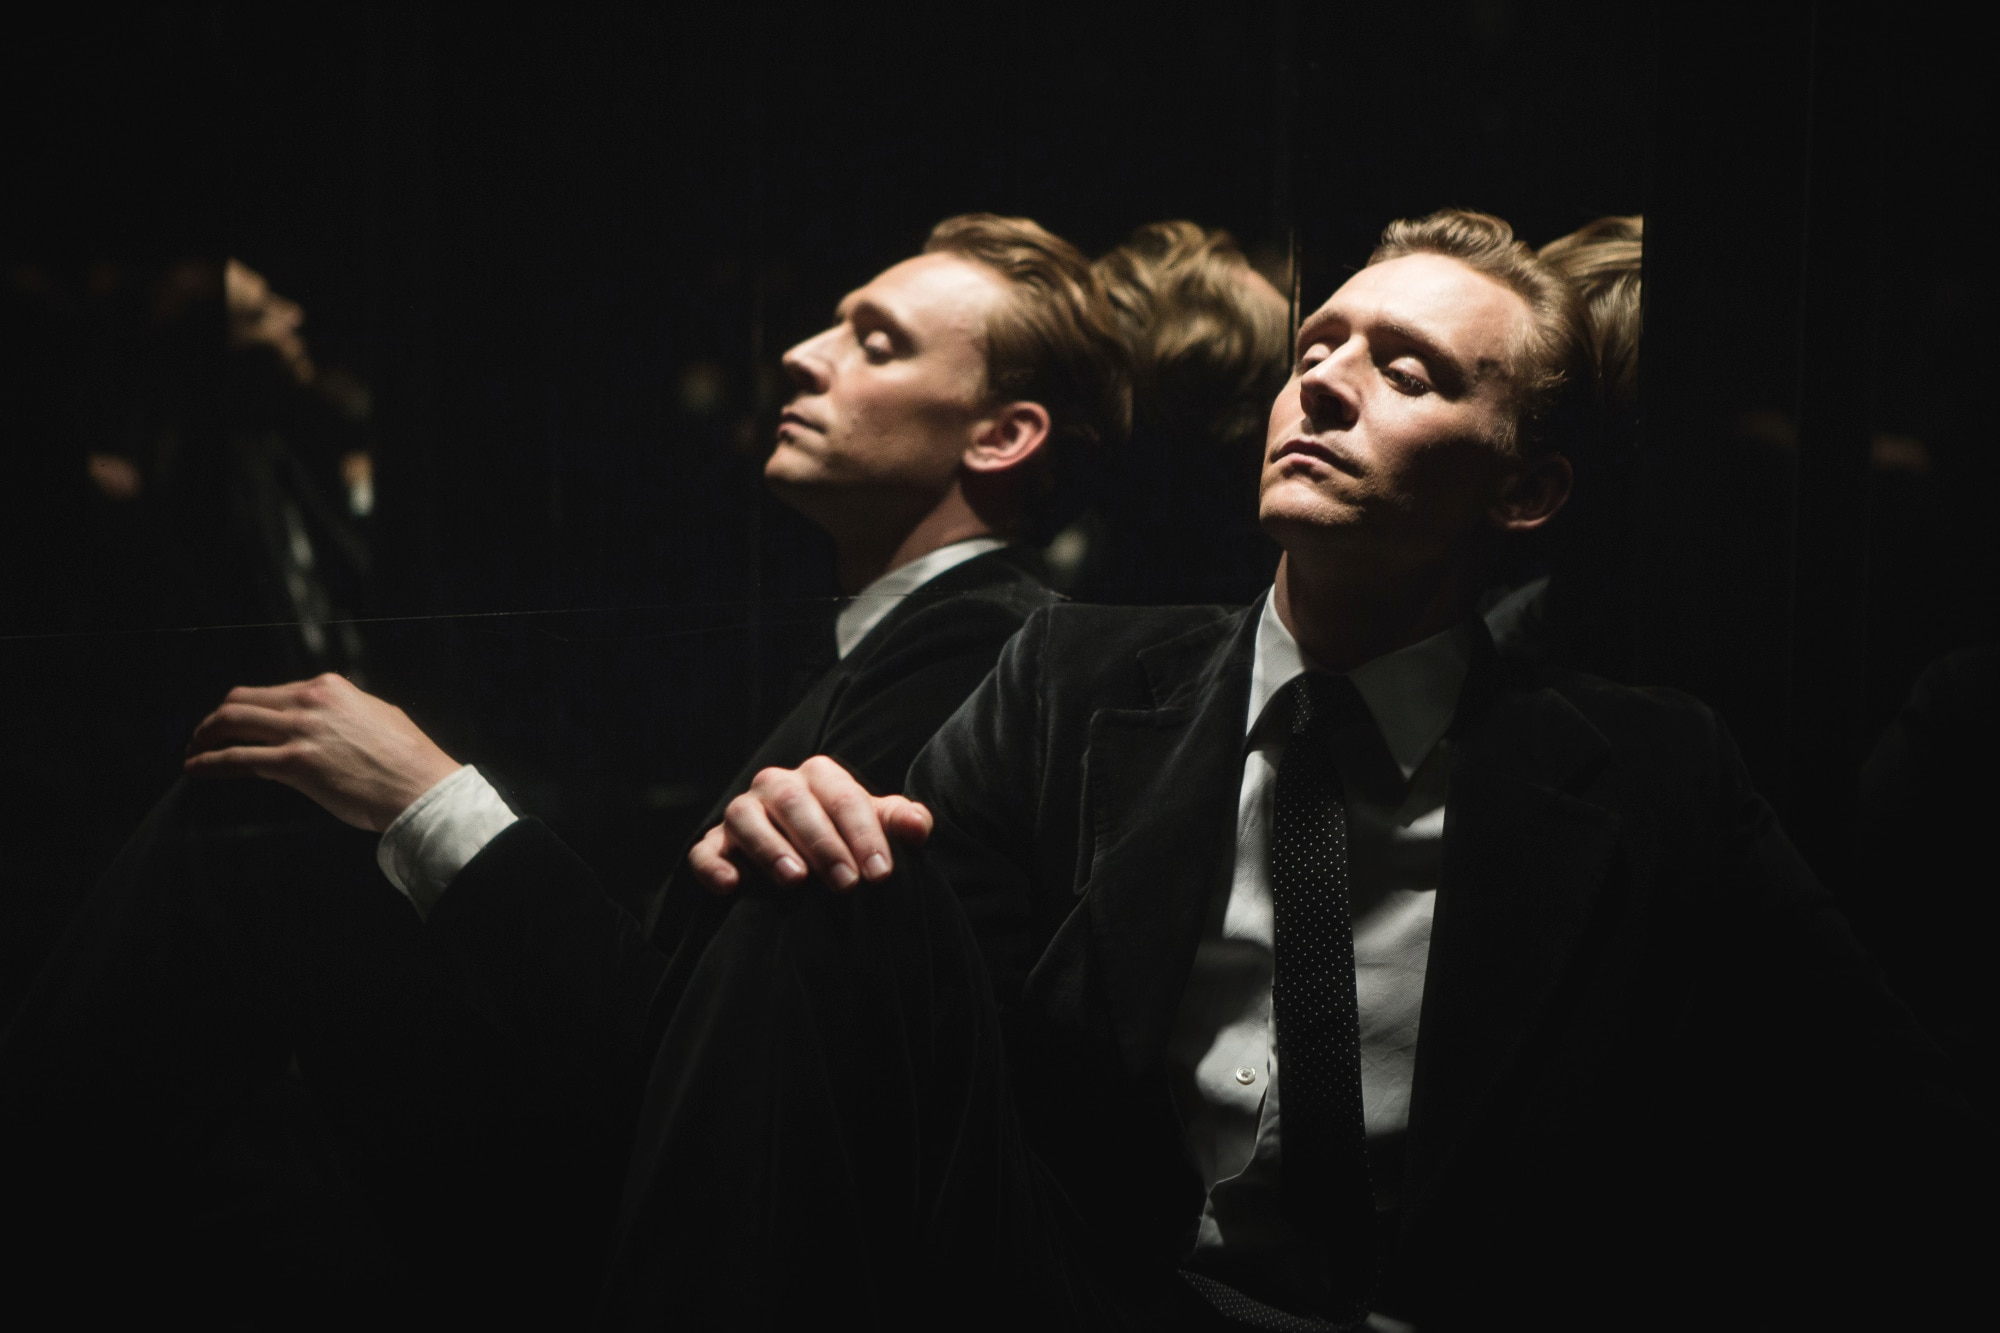 high rise 1 - New High-Rise Clips Feel Just Like Suicide